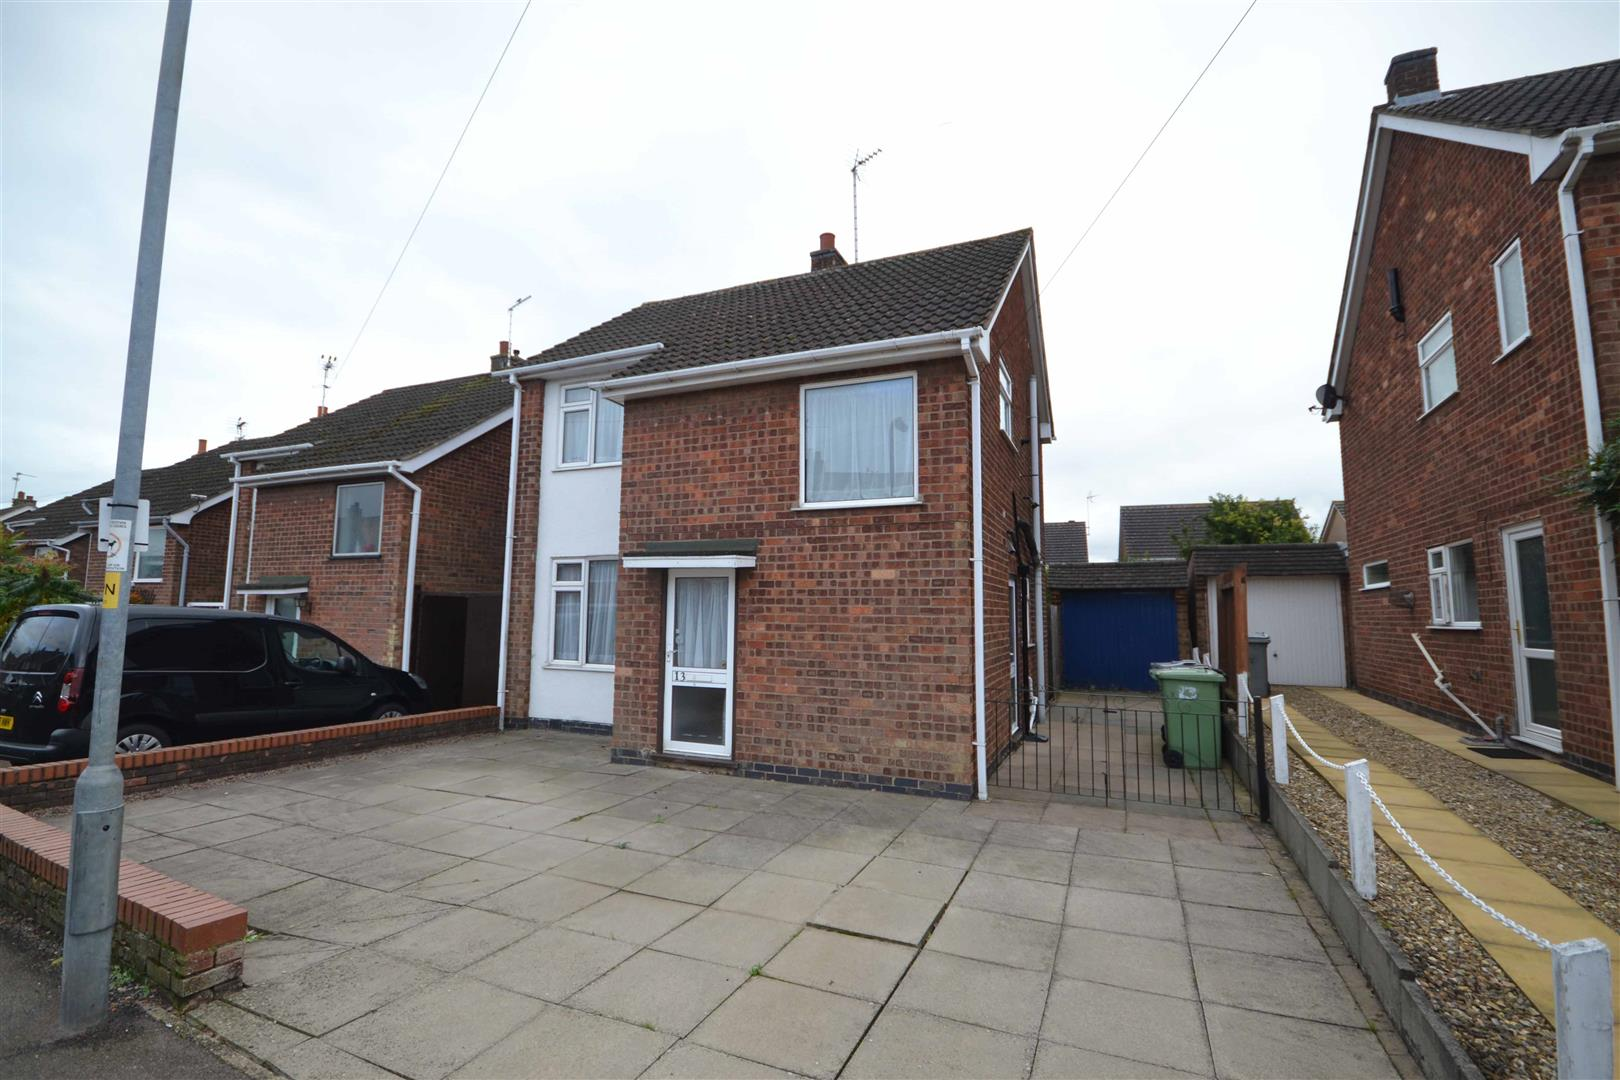 3 Bedroom House - Detached -